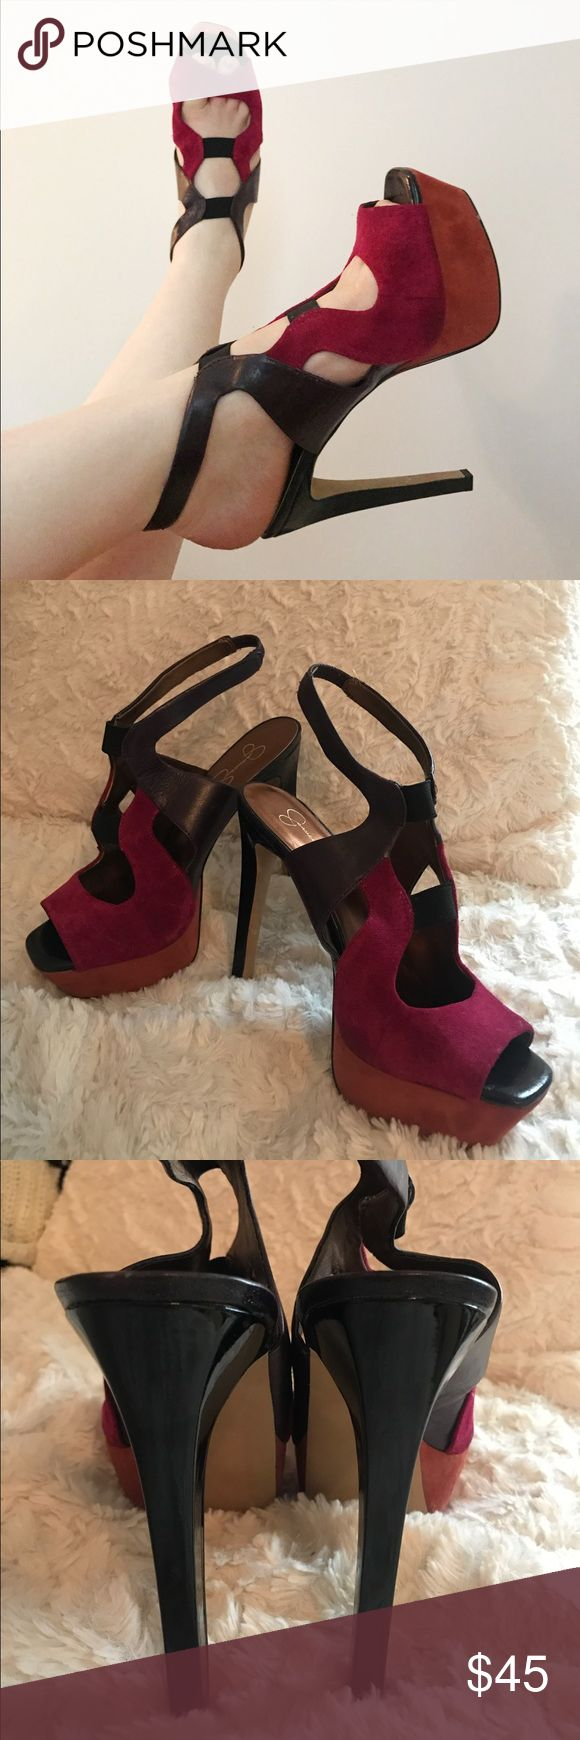 Super fun Jessica Simpson heels! Size 10 Gently used with small marks, barley noticeable considering you're walking on them. Super comfortable and fun for a night out Jessica Simpson Shoes Heels